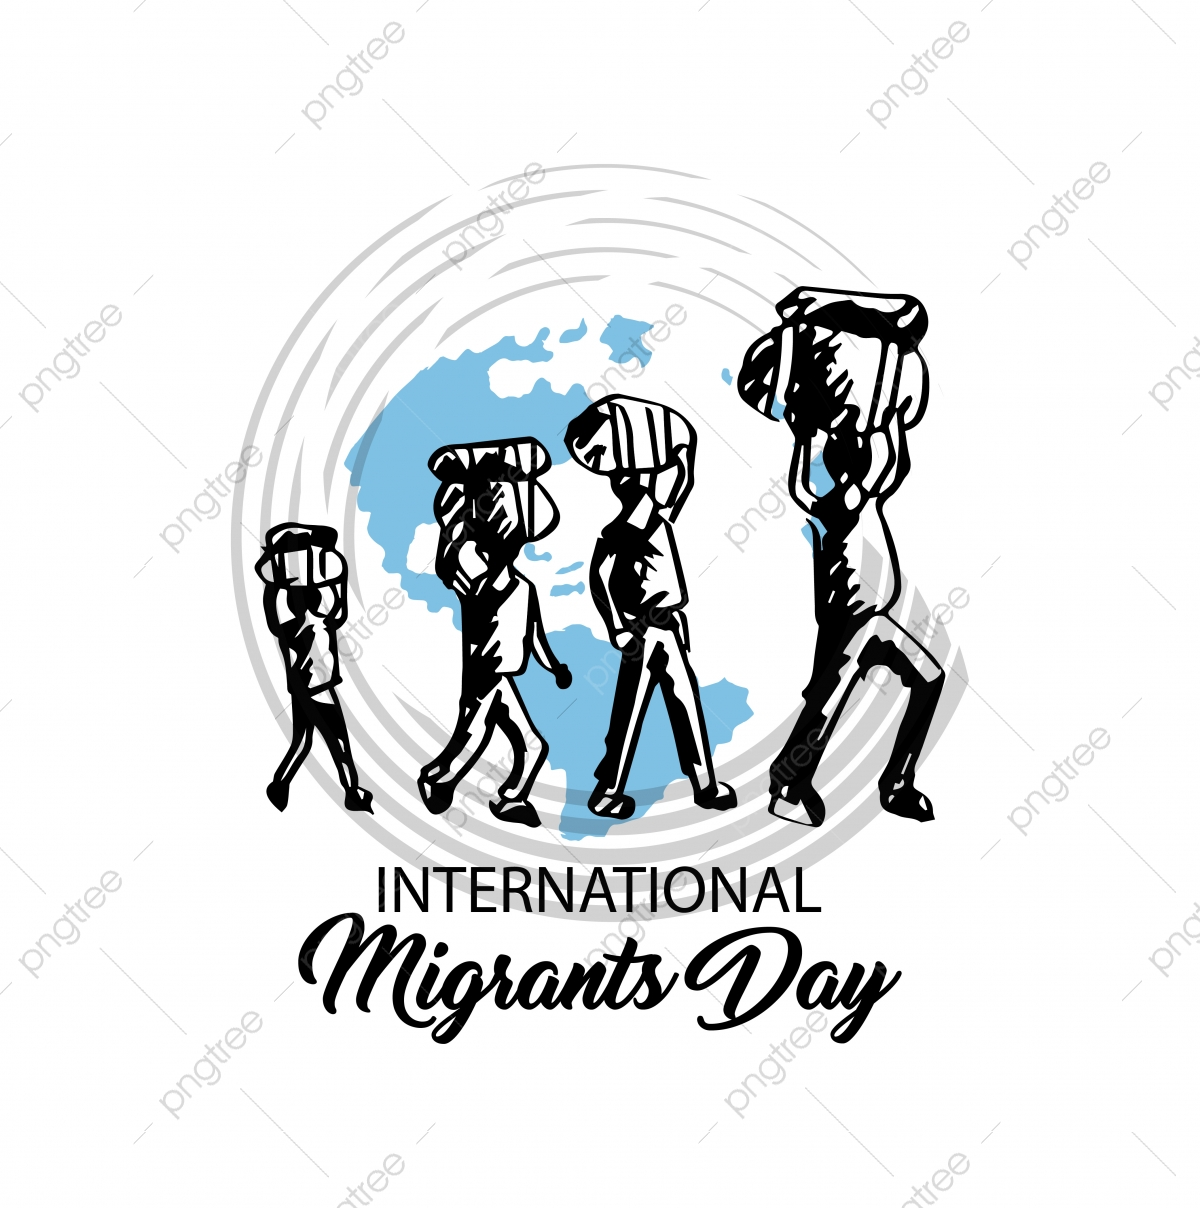 Free Immigration Cliparts, Download Free Clip Art, Free Clip Art on Clipart  Library